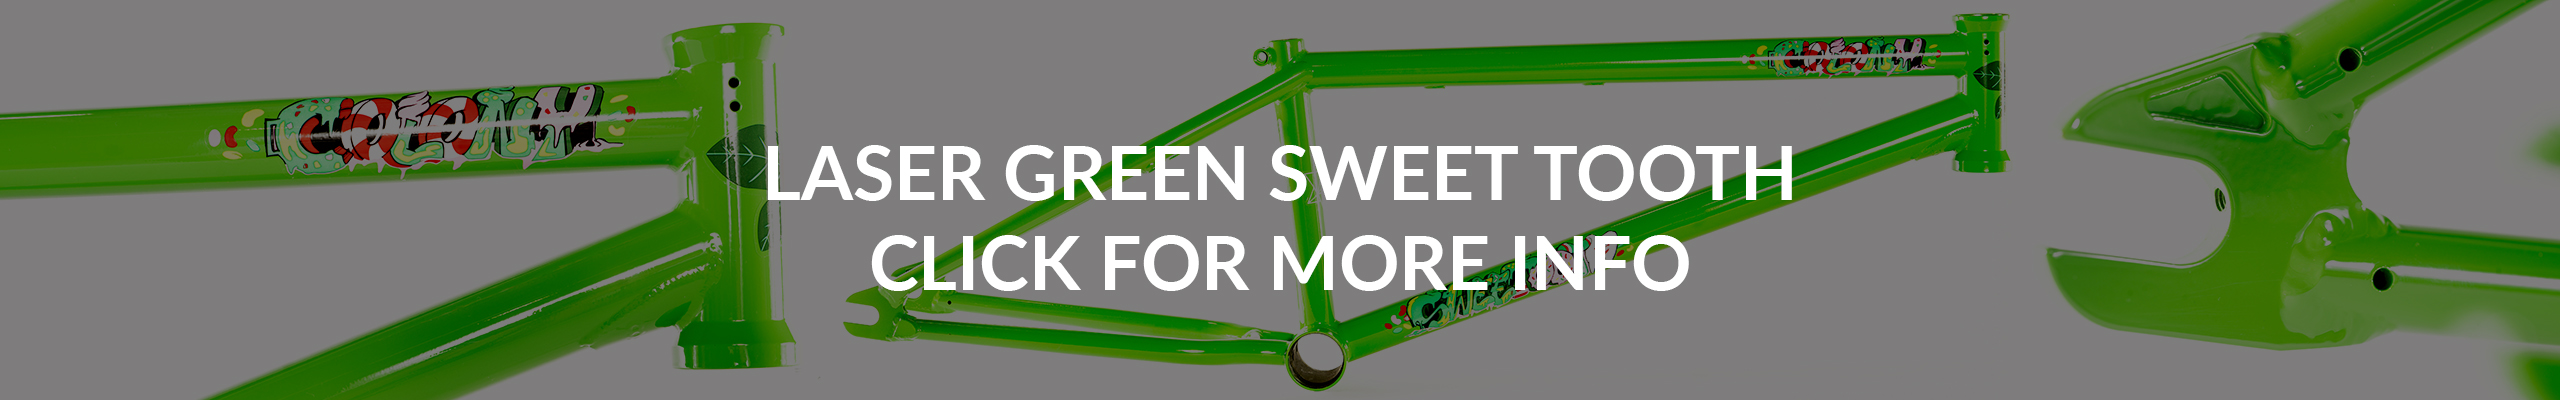 Laser Green Sweet Tooth Frame